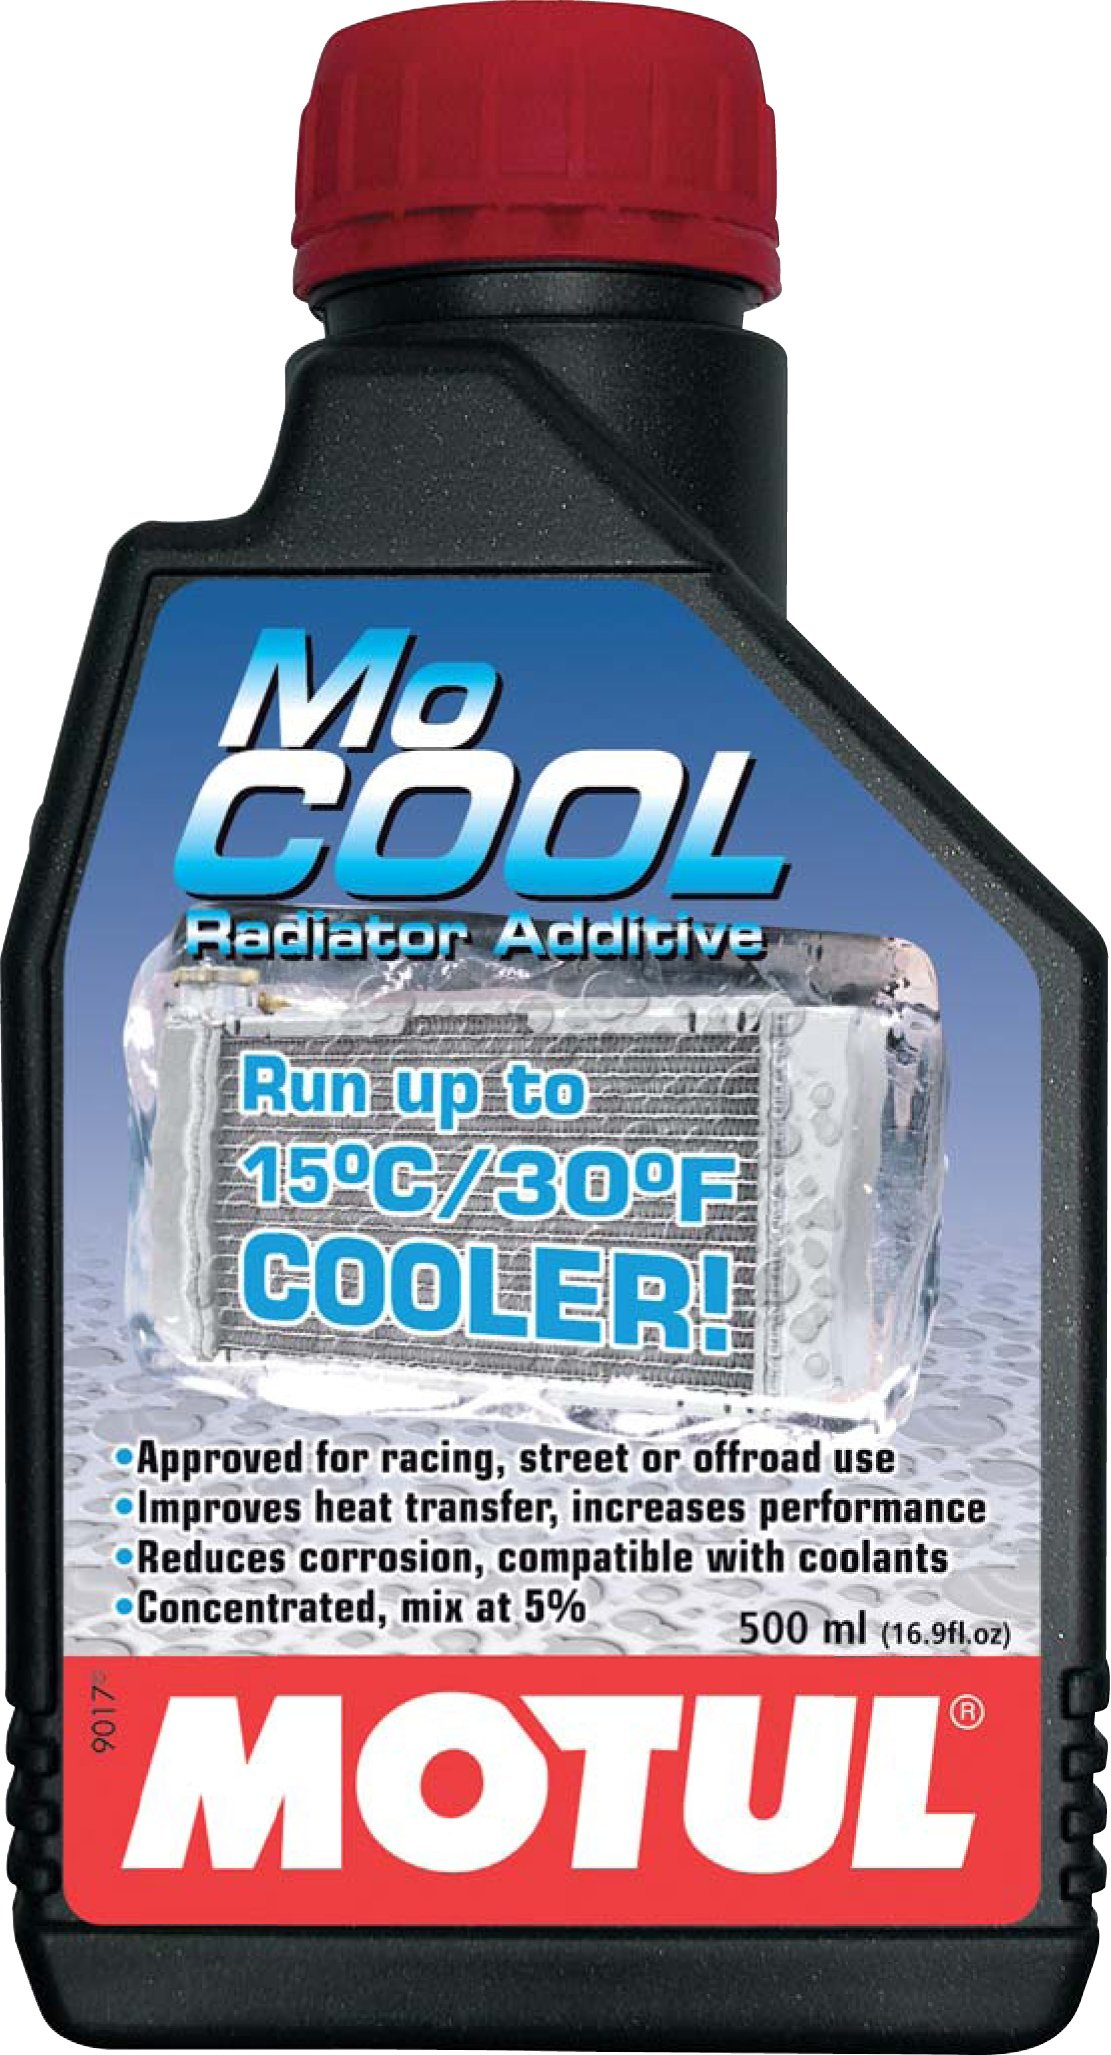 Motul MoCool (Radiator Additive) (Pack of 2) by Motul